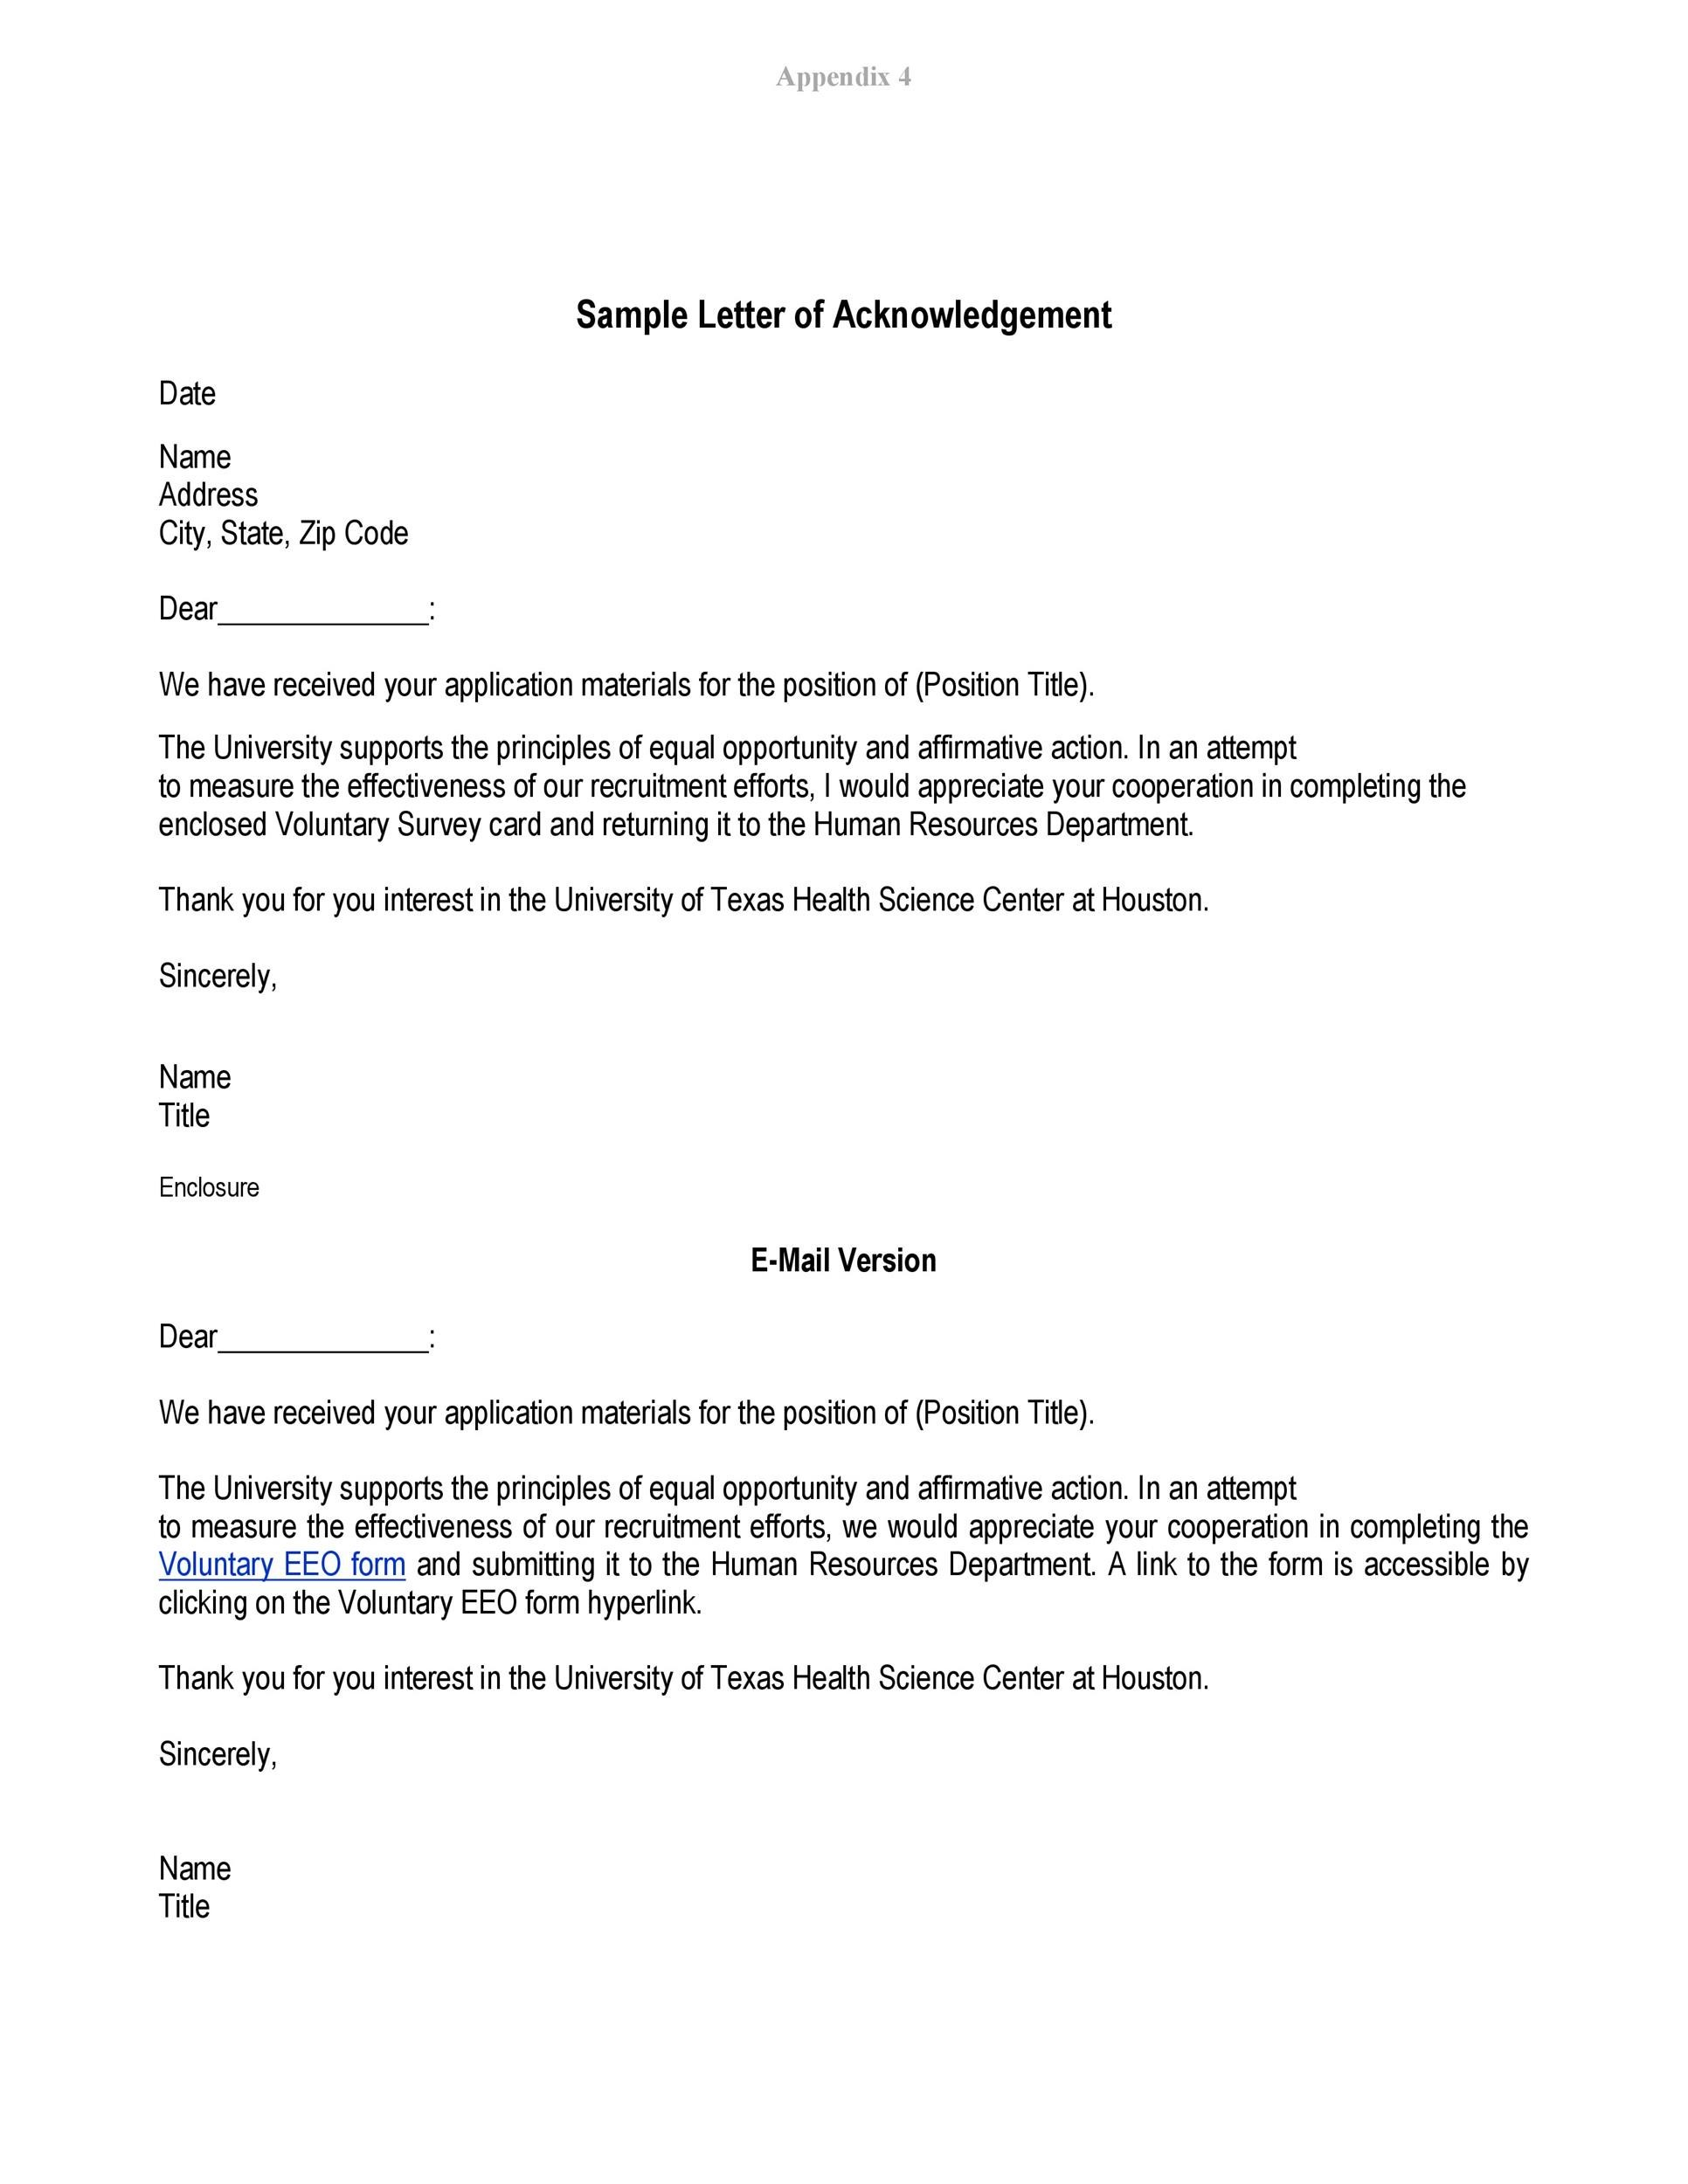 Free acknowledgement sample 07